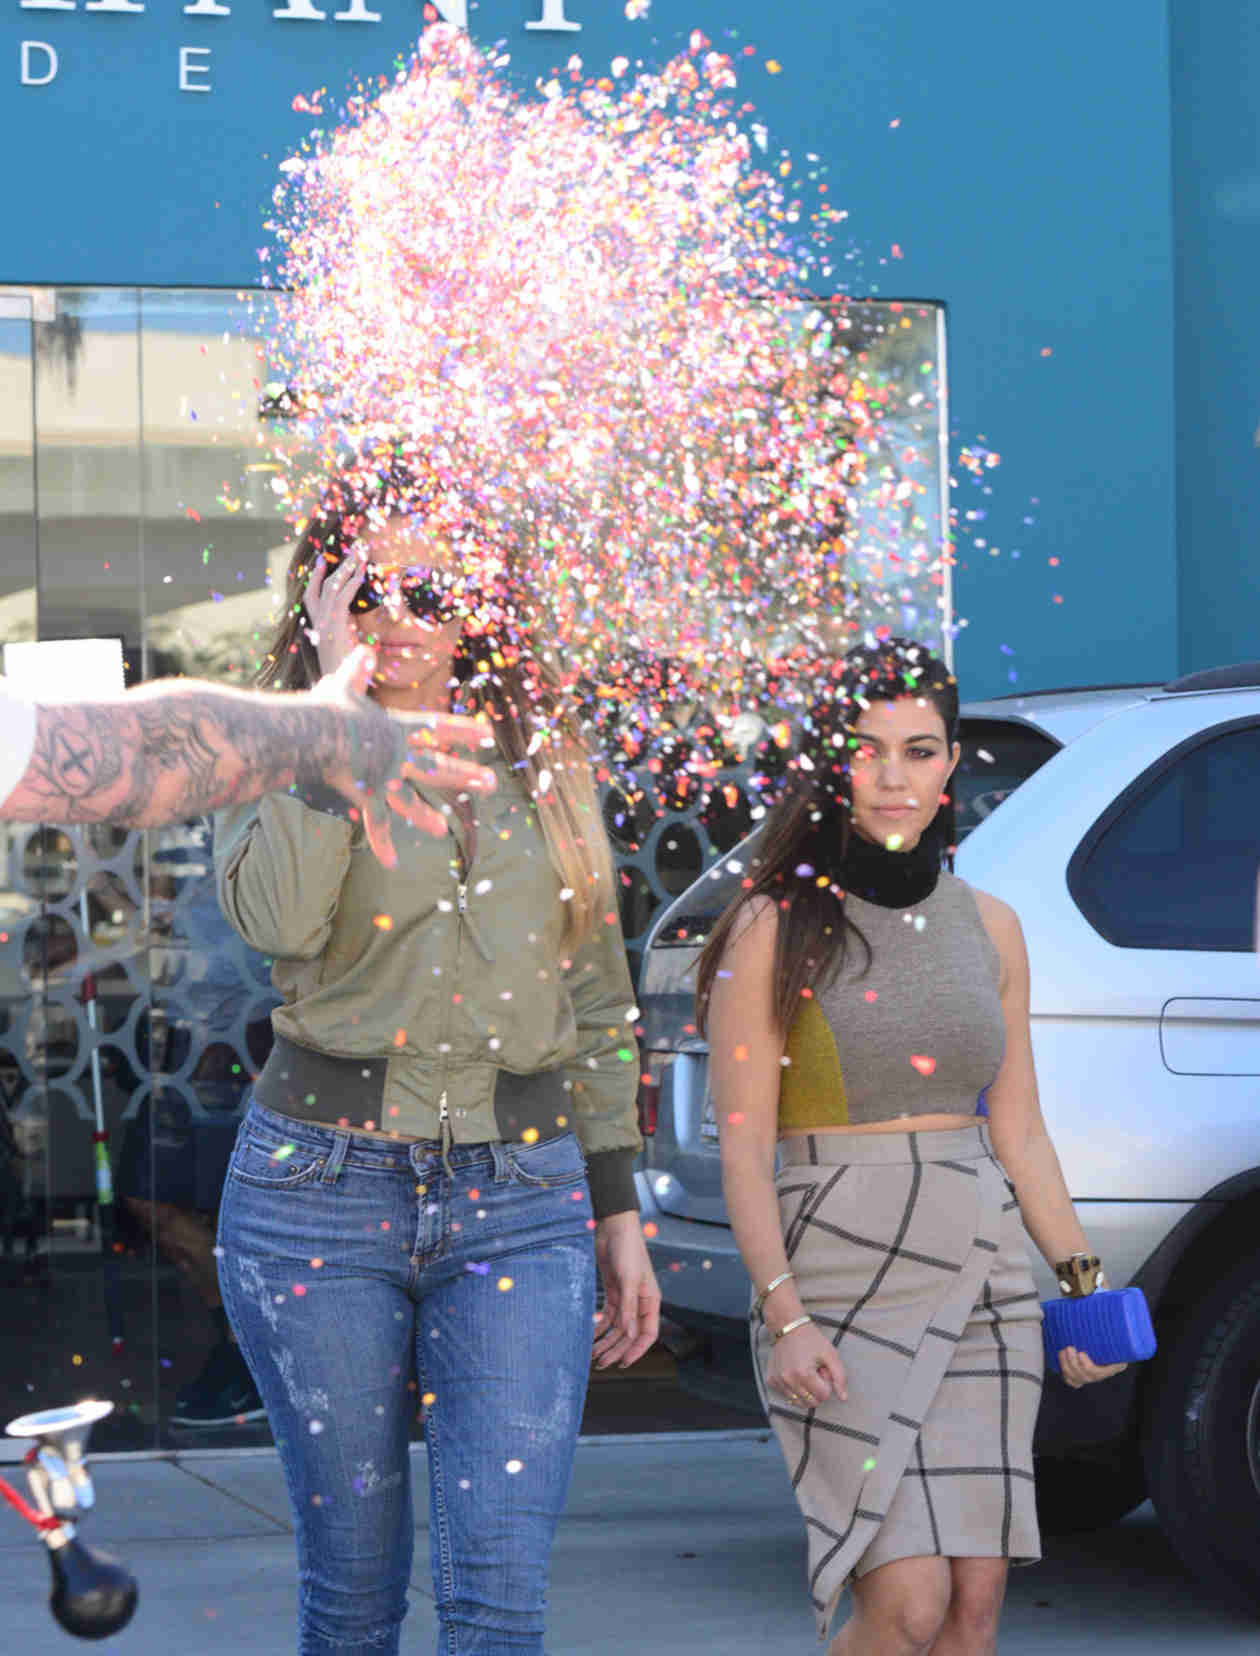 Khloe and Kourtney Kardashian Get Ambushed With Confetti by a Clown (PHOTO)